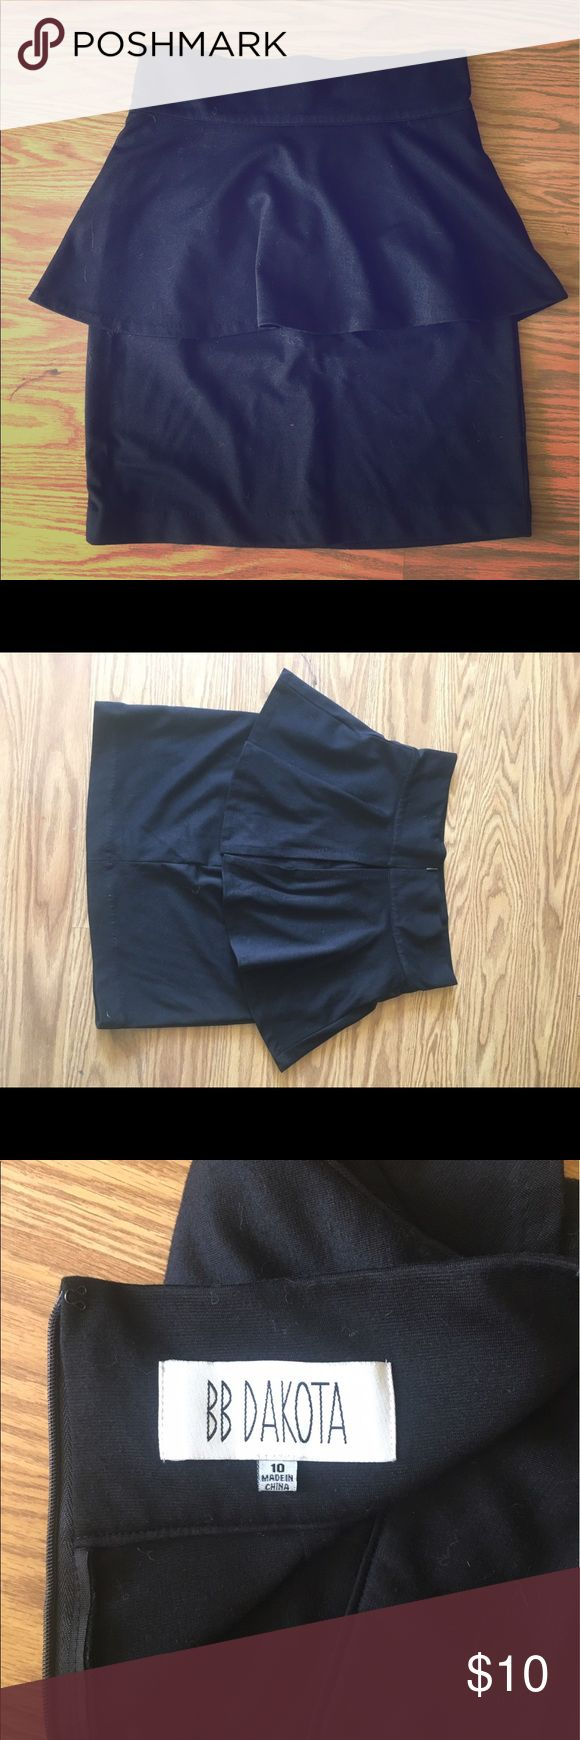 Black Peplum Skirt This is a size 10 black Peplum Skirt in perfect condition. BB Dakota Skirts Pencil